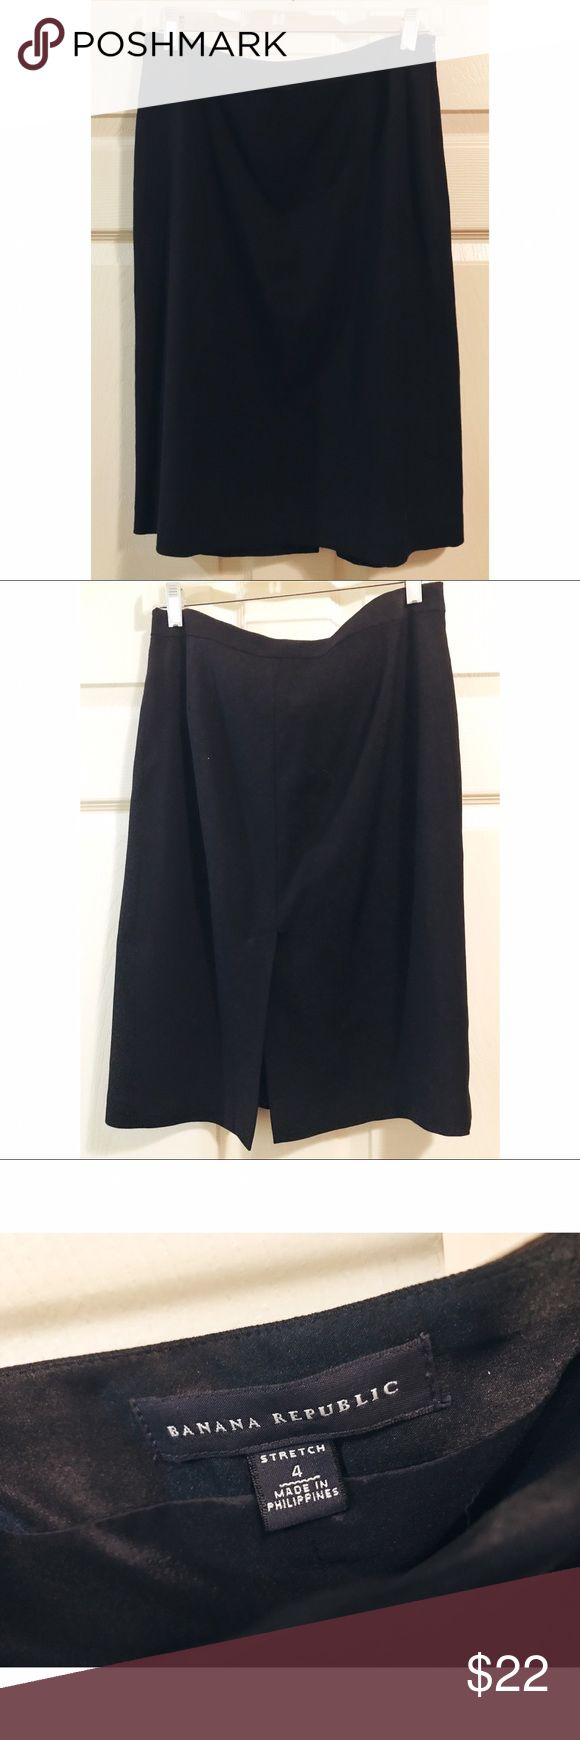 Banana Republic • NWOT lightweight pencil skirt Banana Republic. New without tags. Wool black pencil skirt. Lightweight. Super cute! Size 4. (The 1st photo is directly from the Banana Republic website and I do not take credit for it) Banana Republic Skirts Pencil